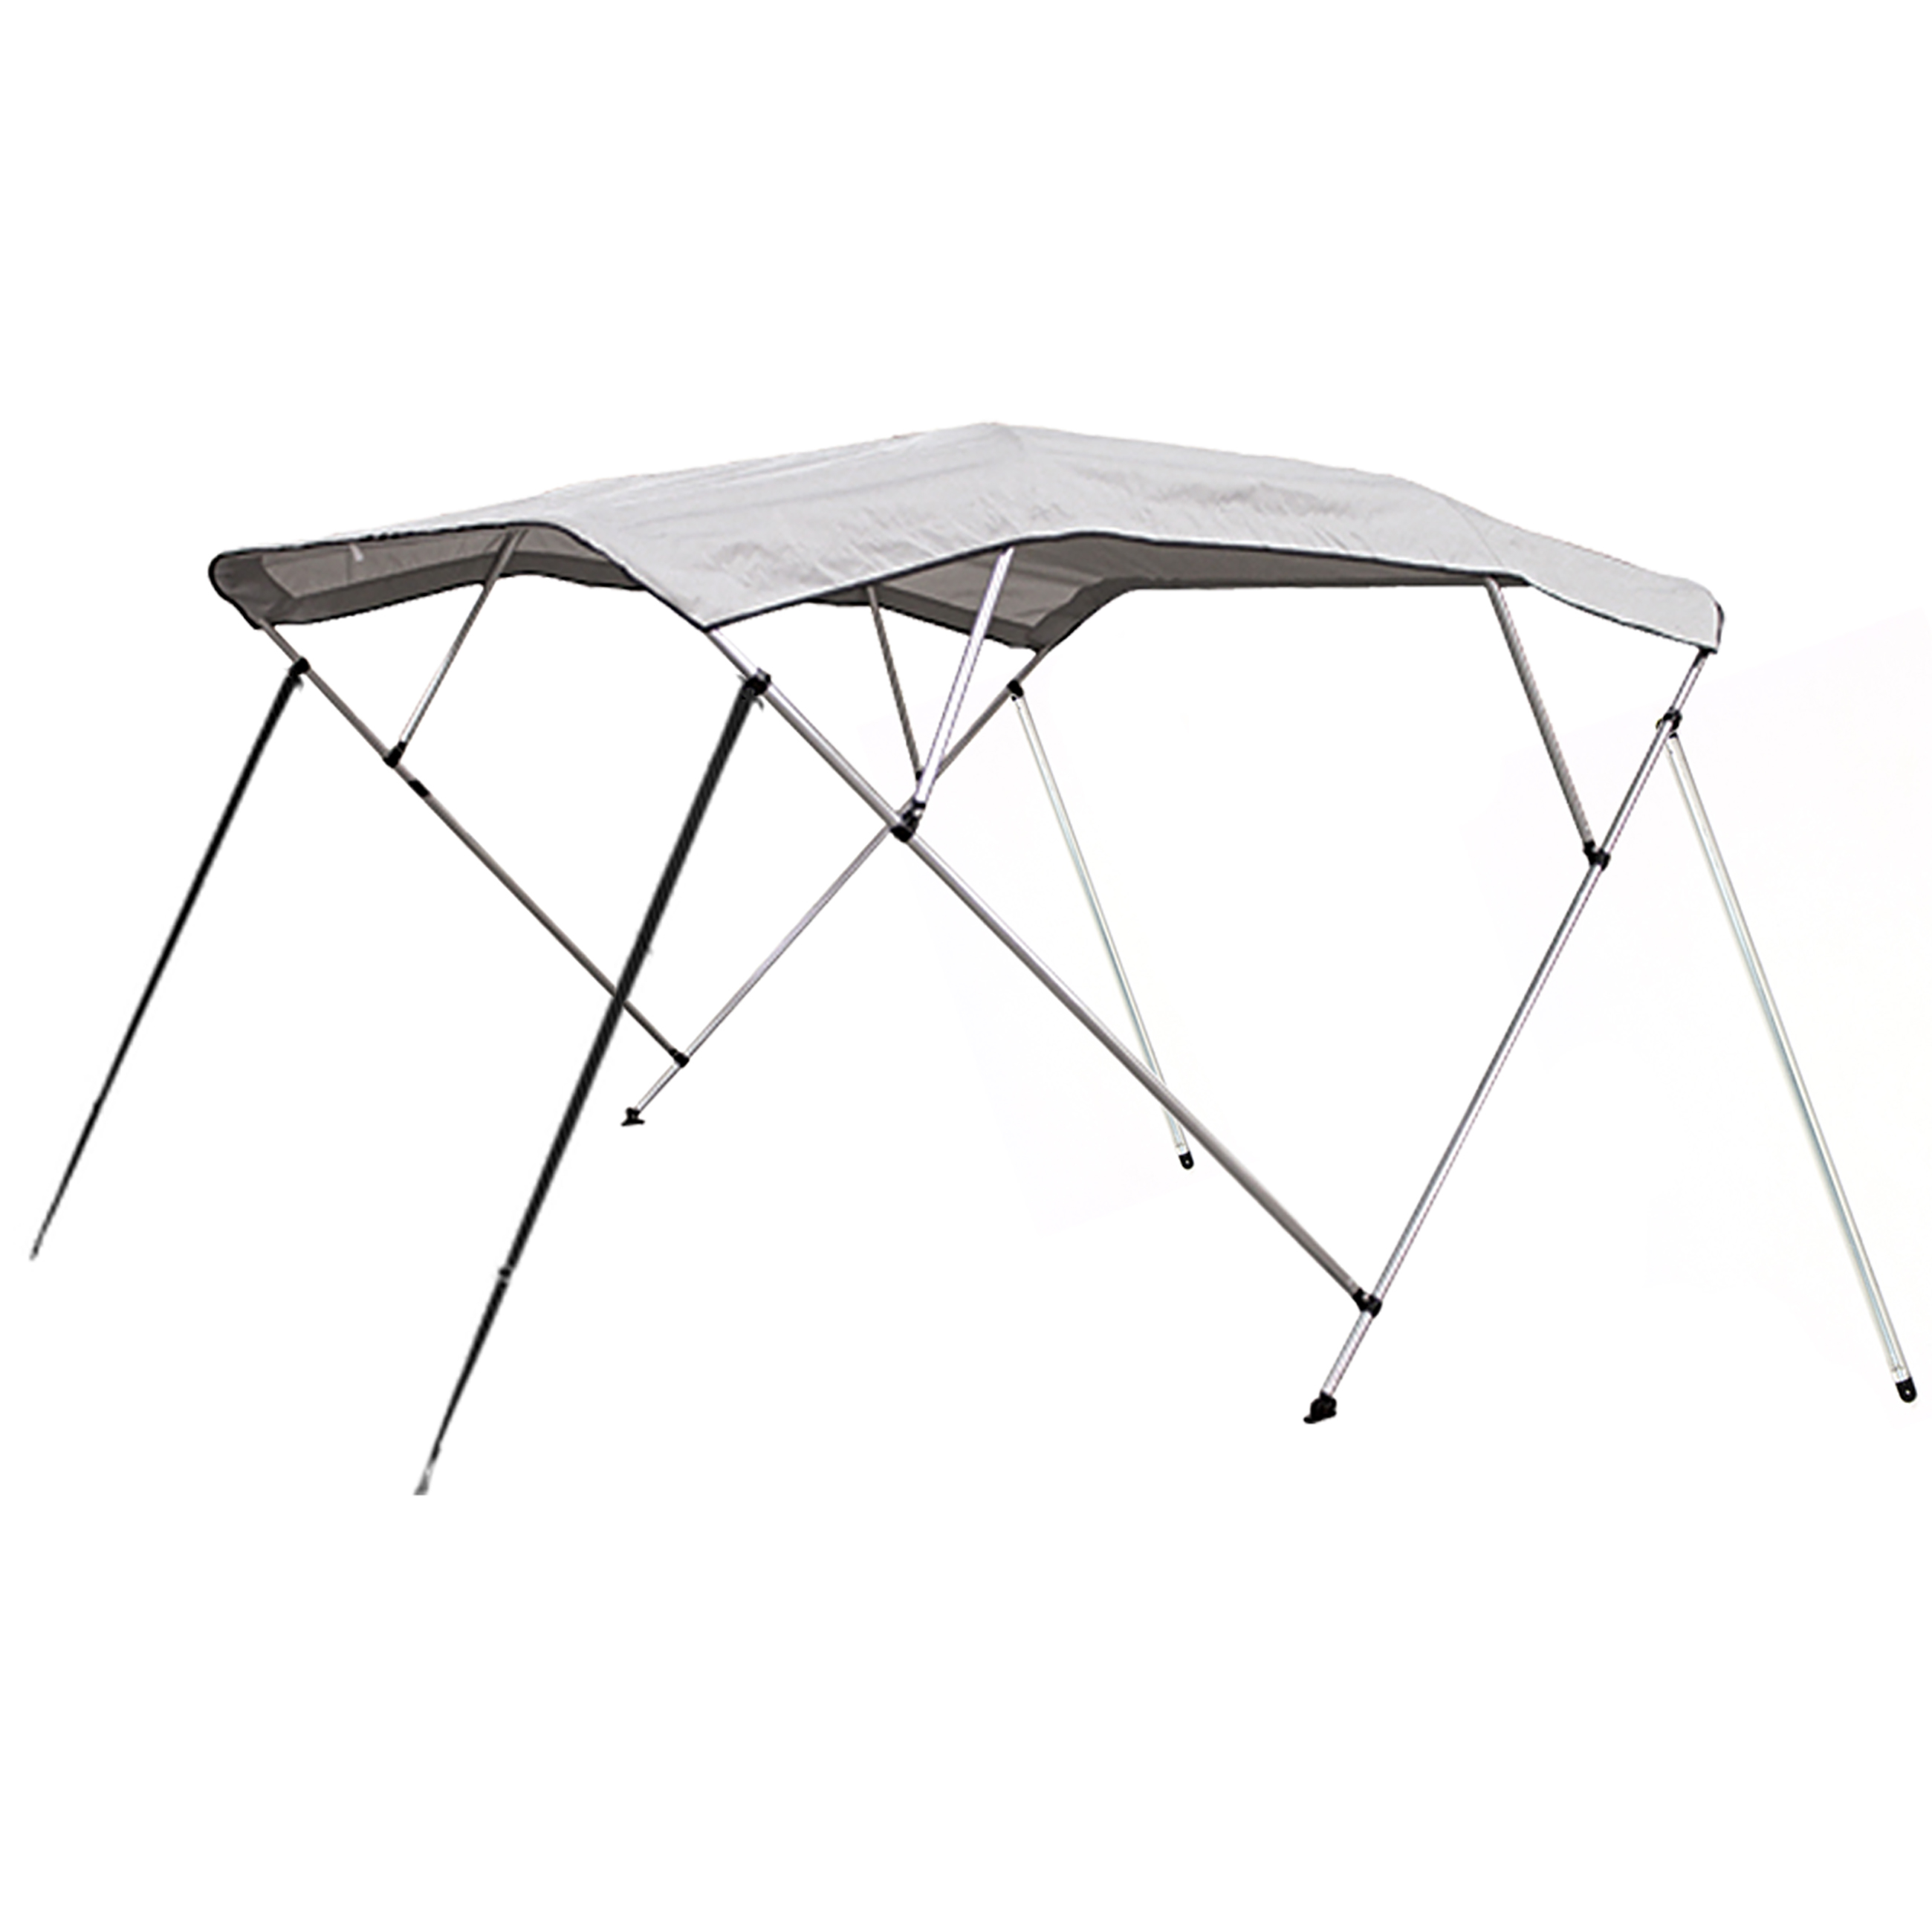 Best Choice Products 91x96in 4 Bow Bimini Waterproof Top Boat Cover- Gray